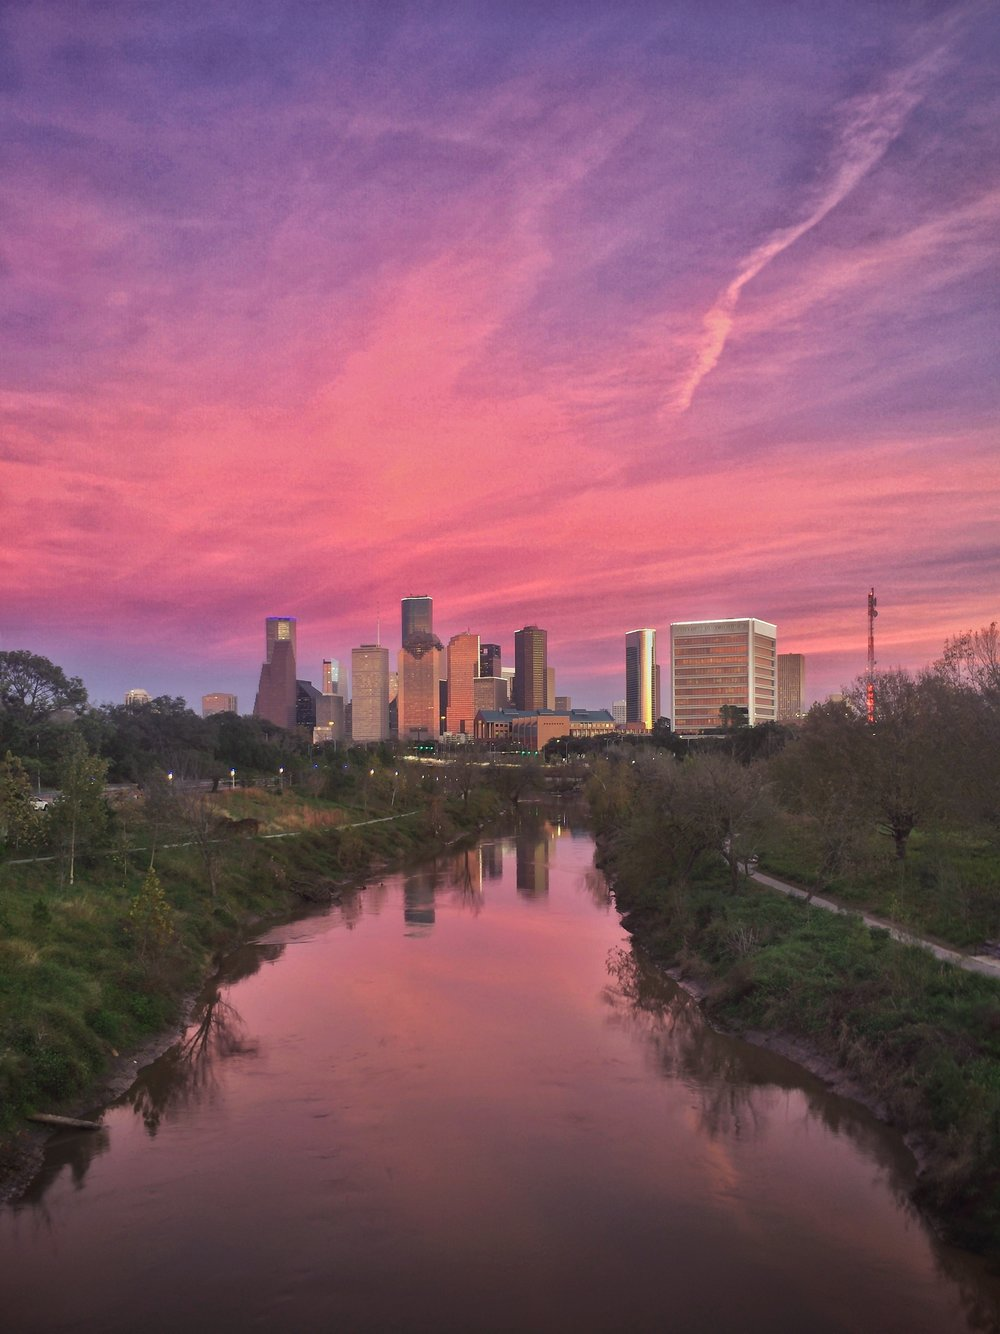 This is the first photo I took this year: January 3, 2017 along Buffalo Bayou.